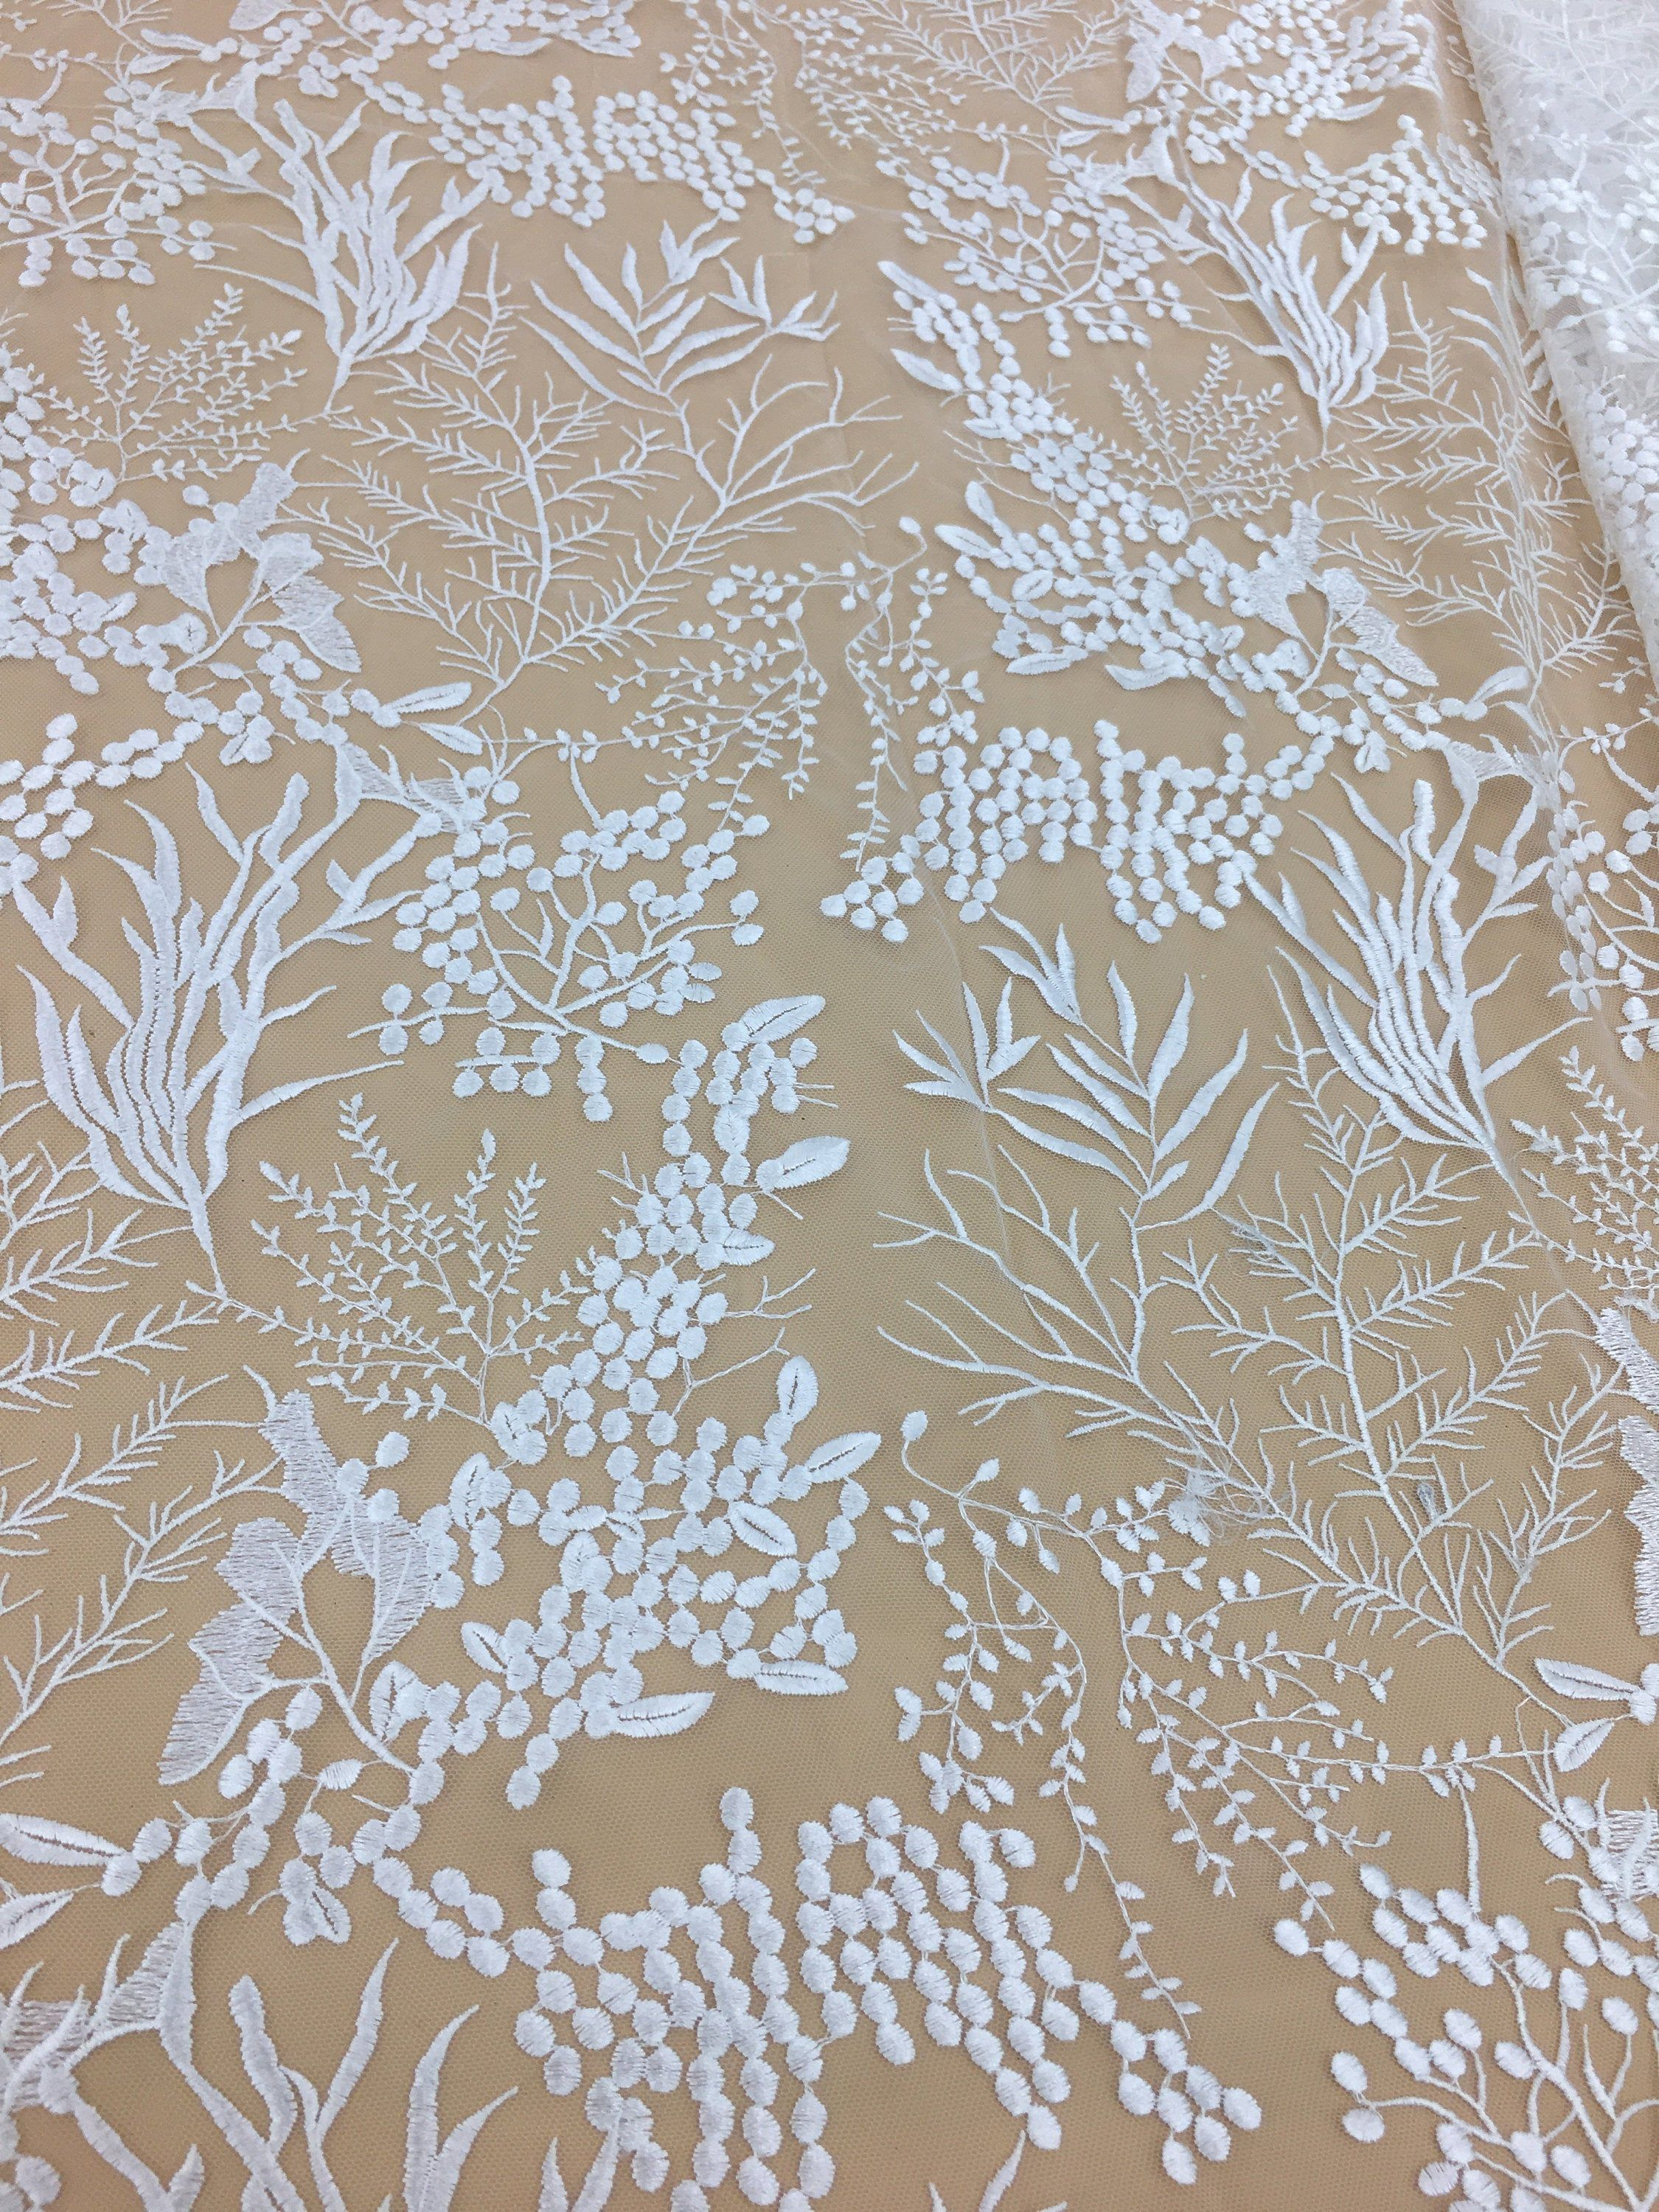 Fashion Lace Fabric Elegant Embroidered Lace French Tulle